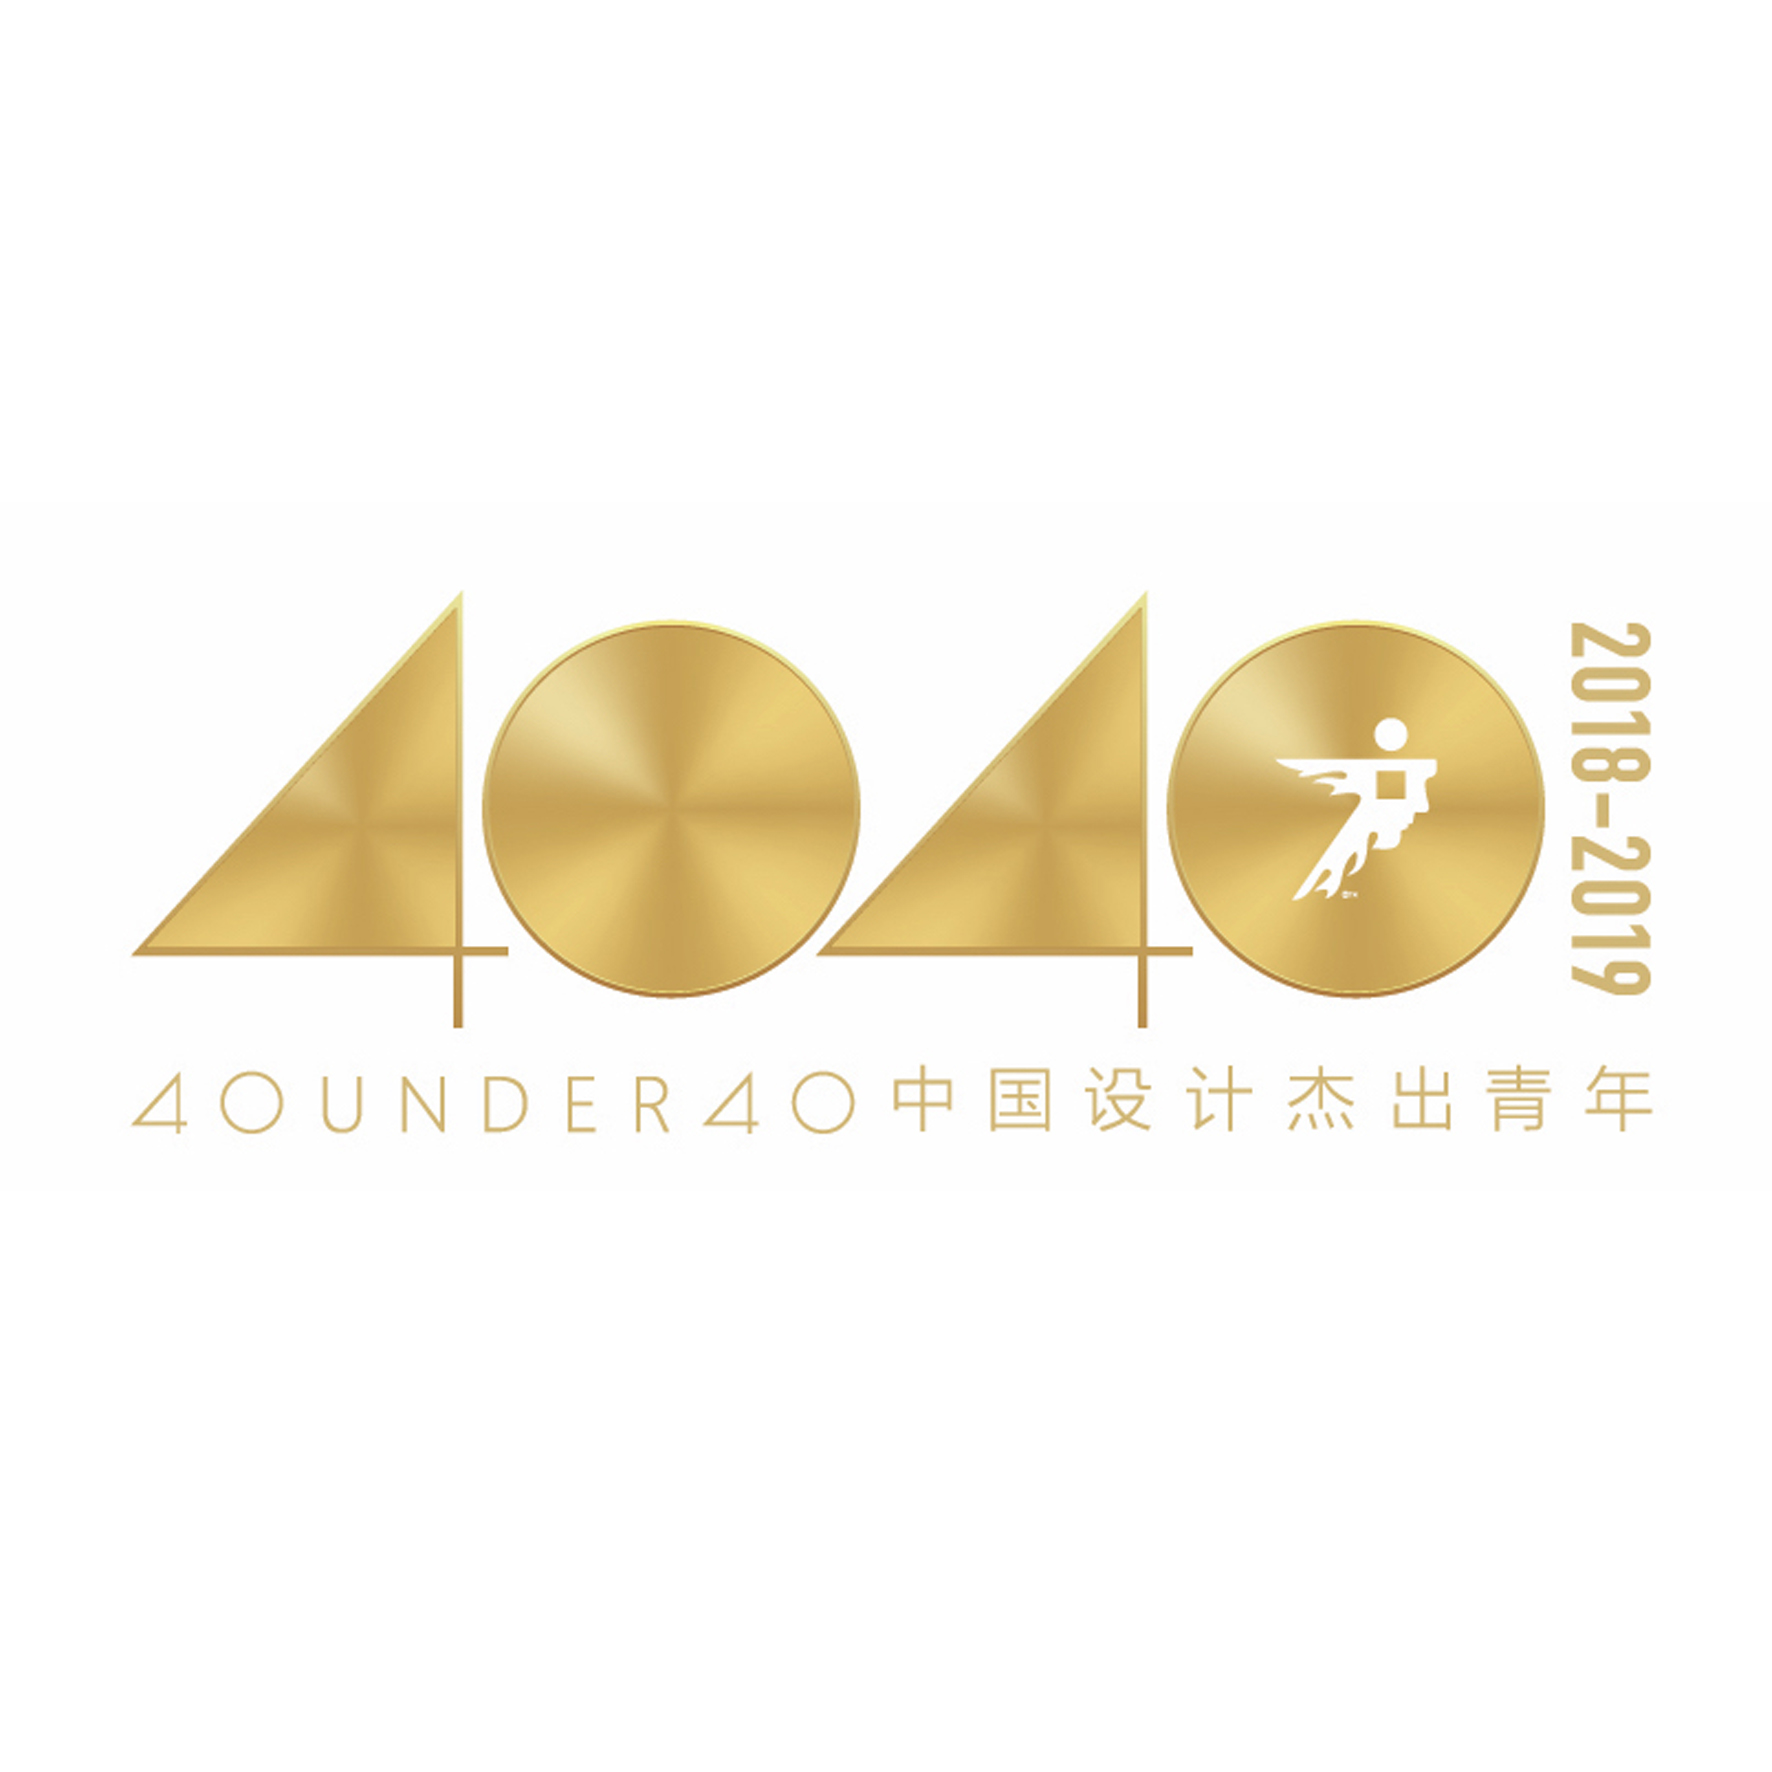 China (Hong Kong) 40 Under 40 Interior Design Award 2018-2019